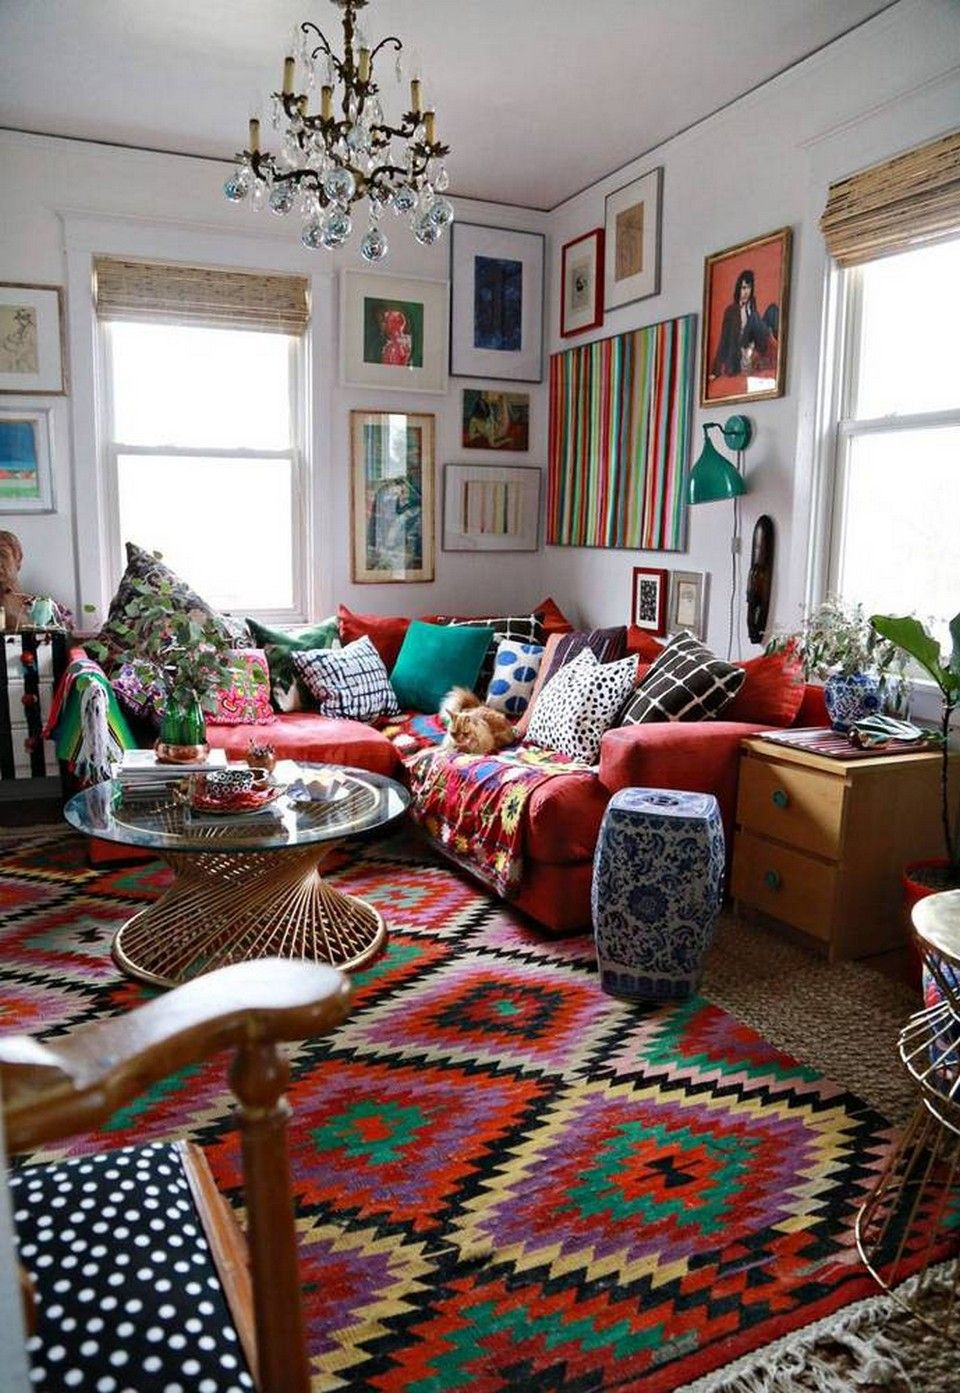 2018 Bohemian Interior Design Trends: 90+ Amazing Tips And Ideas  Http://oscargrantprotests.com/2017 Bohemian Interior Design  Trends 90 Amazing Tips Ideas/